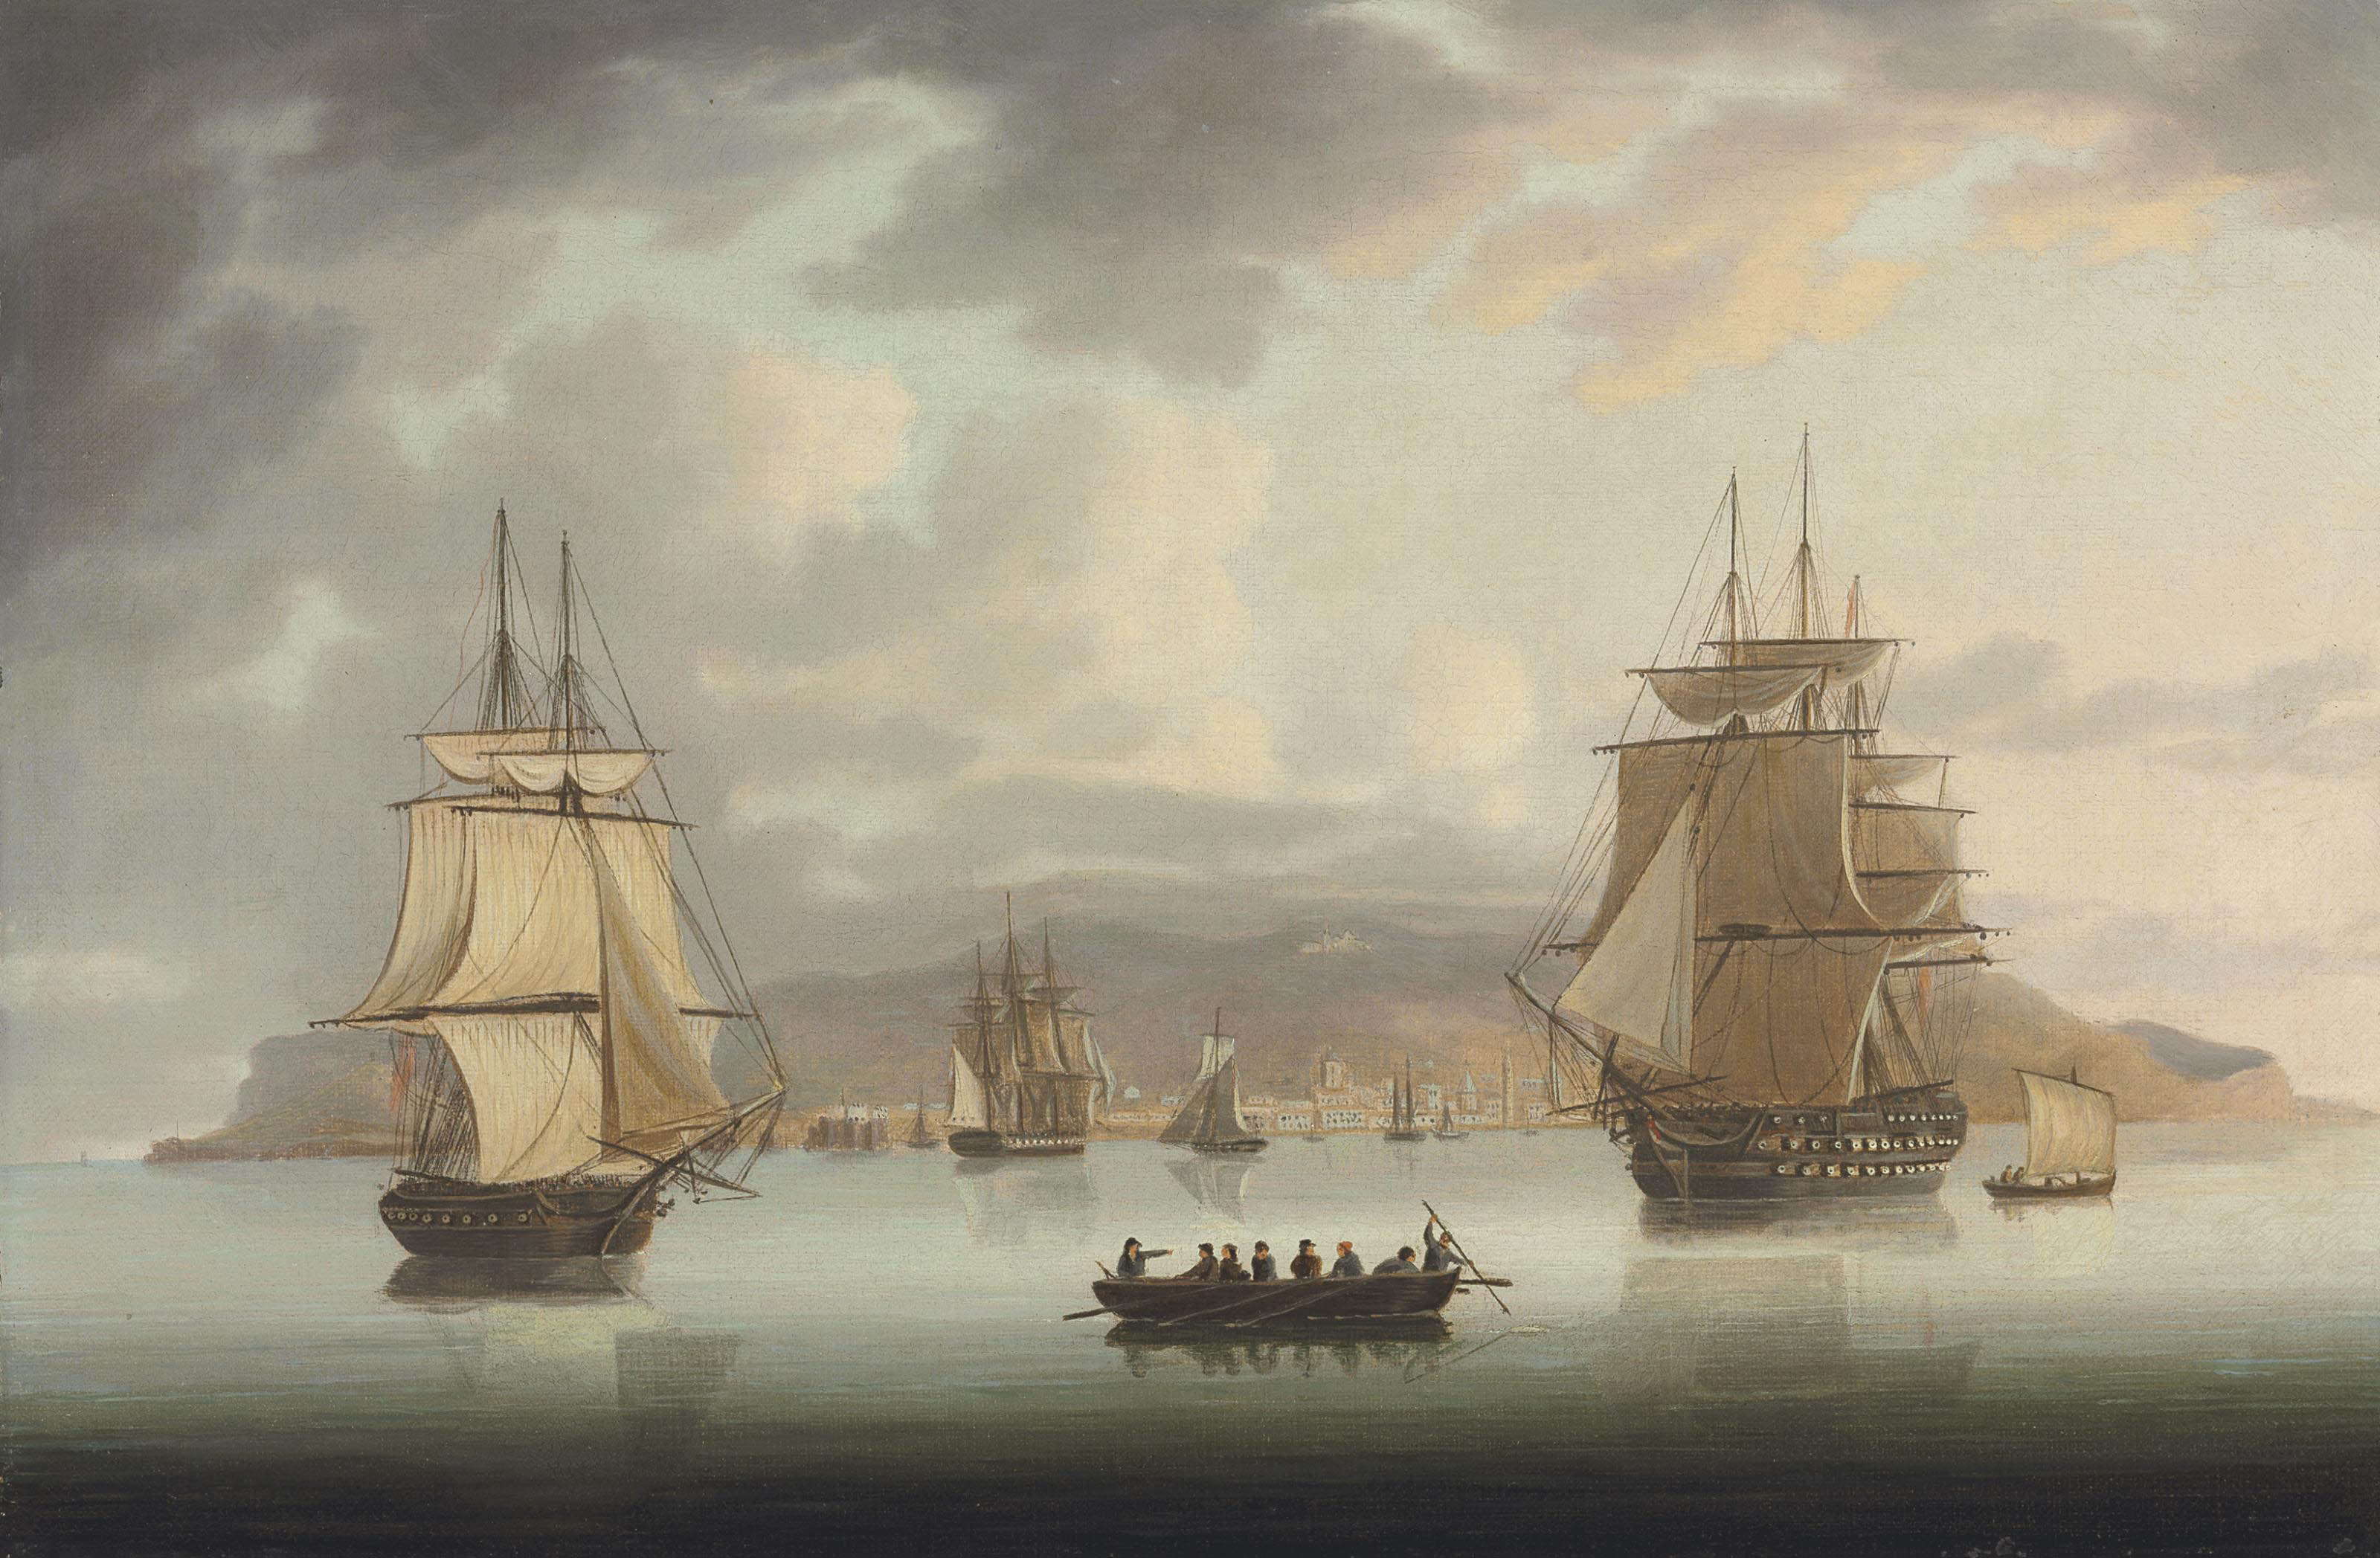 Funchal Roadstead, H.M.S. Blenheim with Greyhound and Harrier Outward Bound, 1805